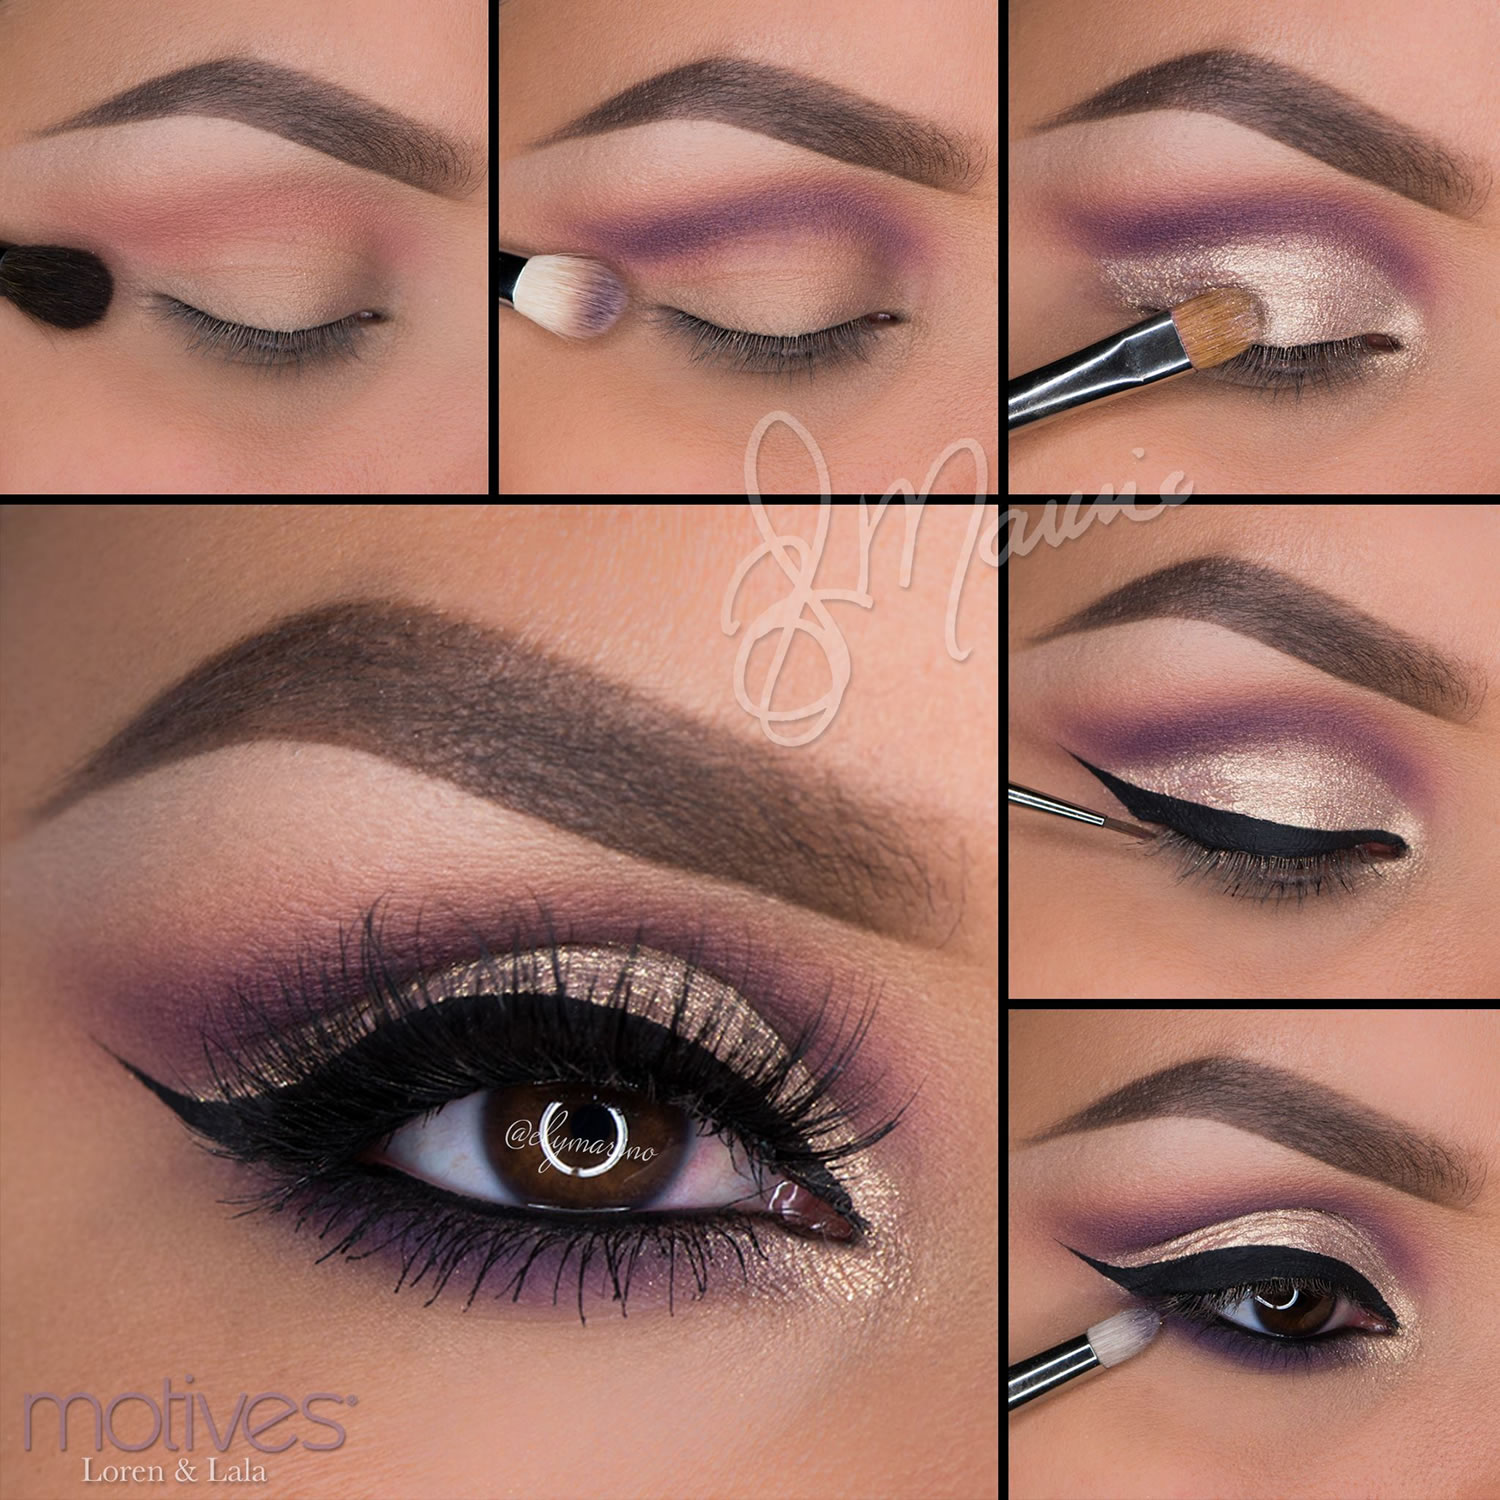 How To Put On Purple Eyeshadow For Brown Eyes - The Best Makeup ...